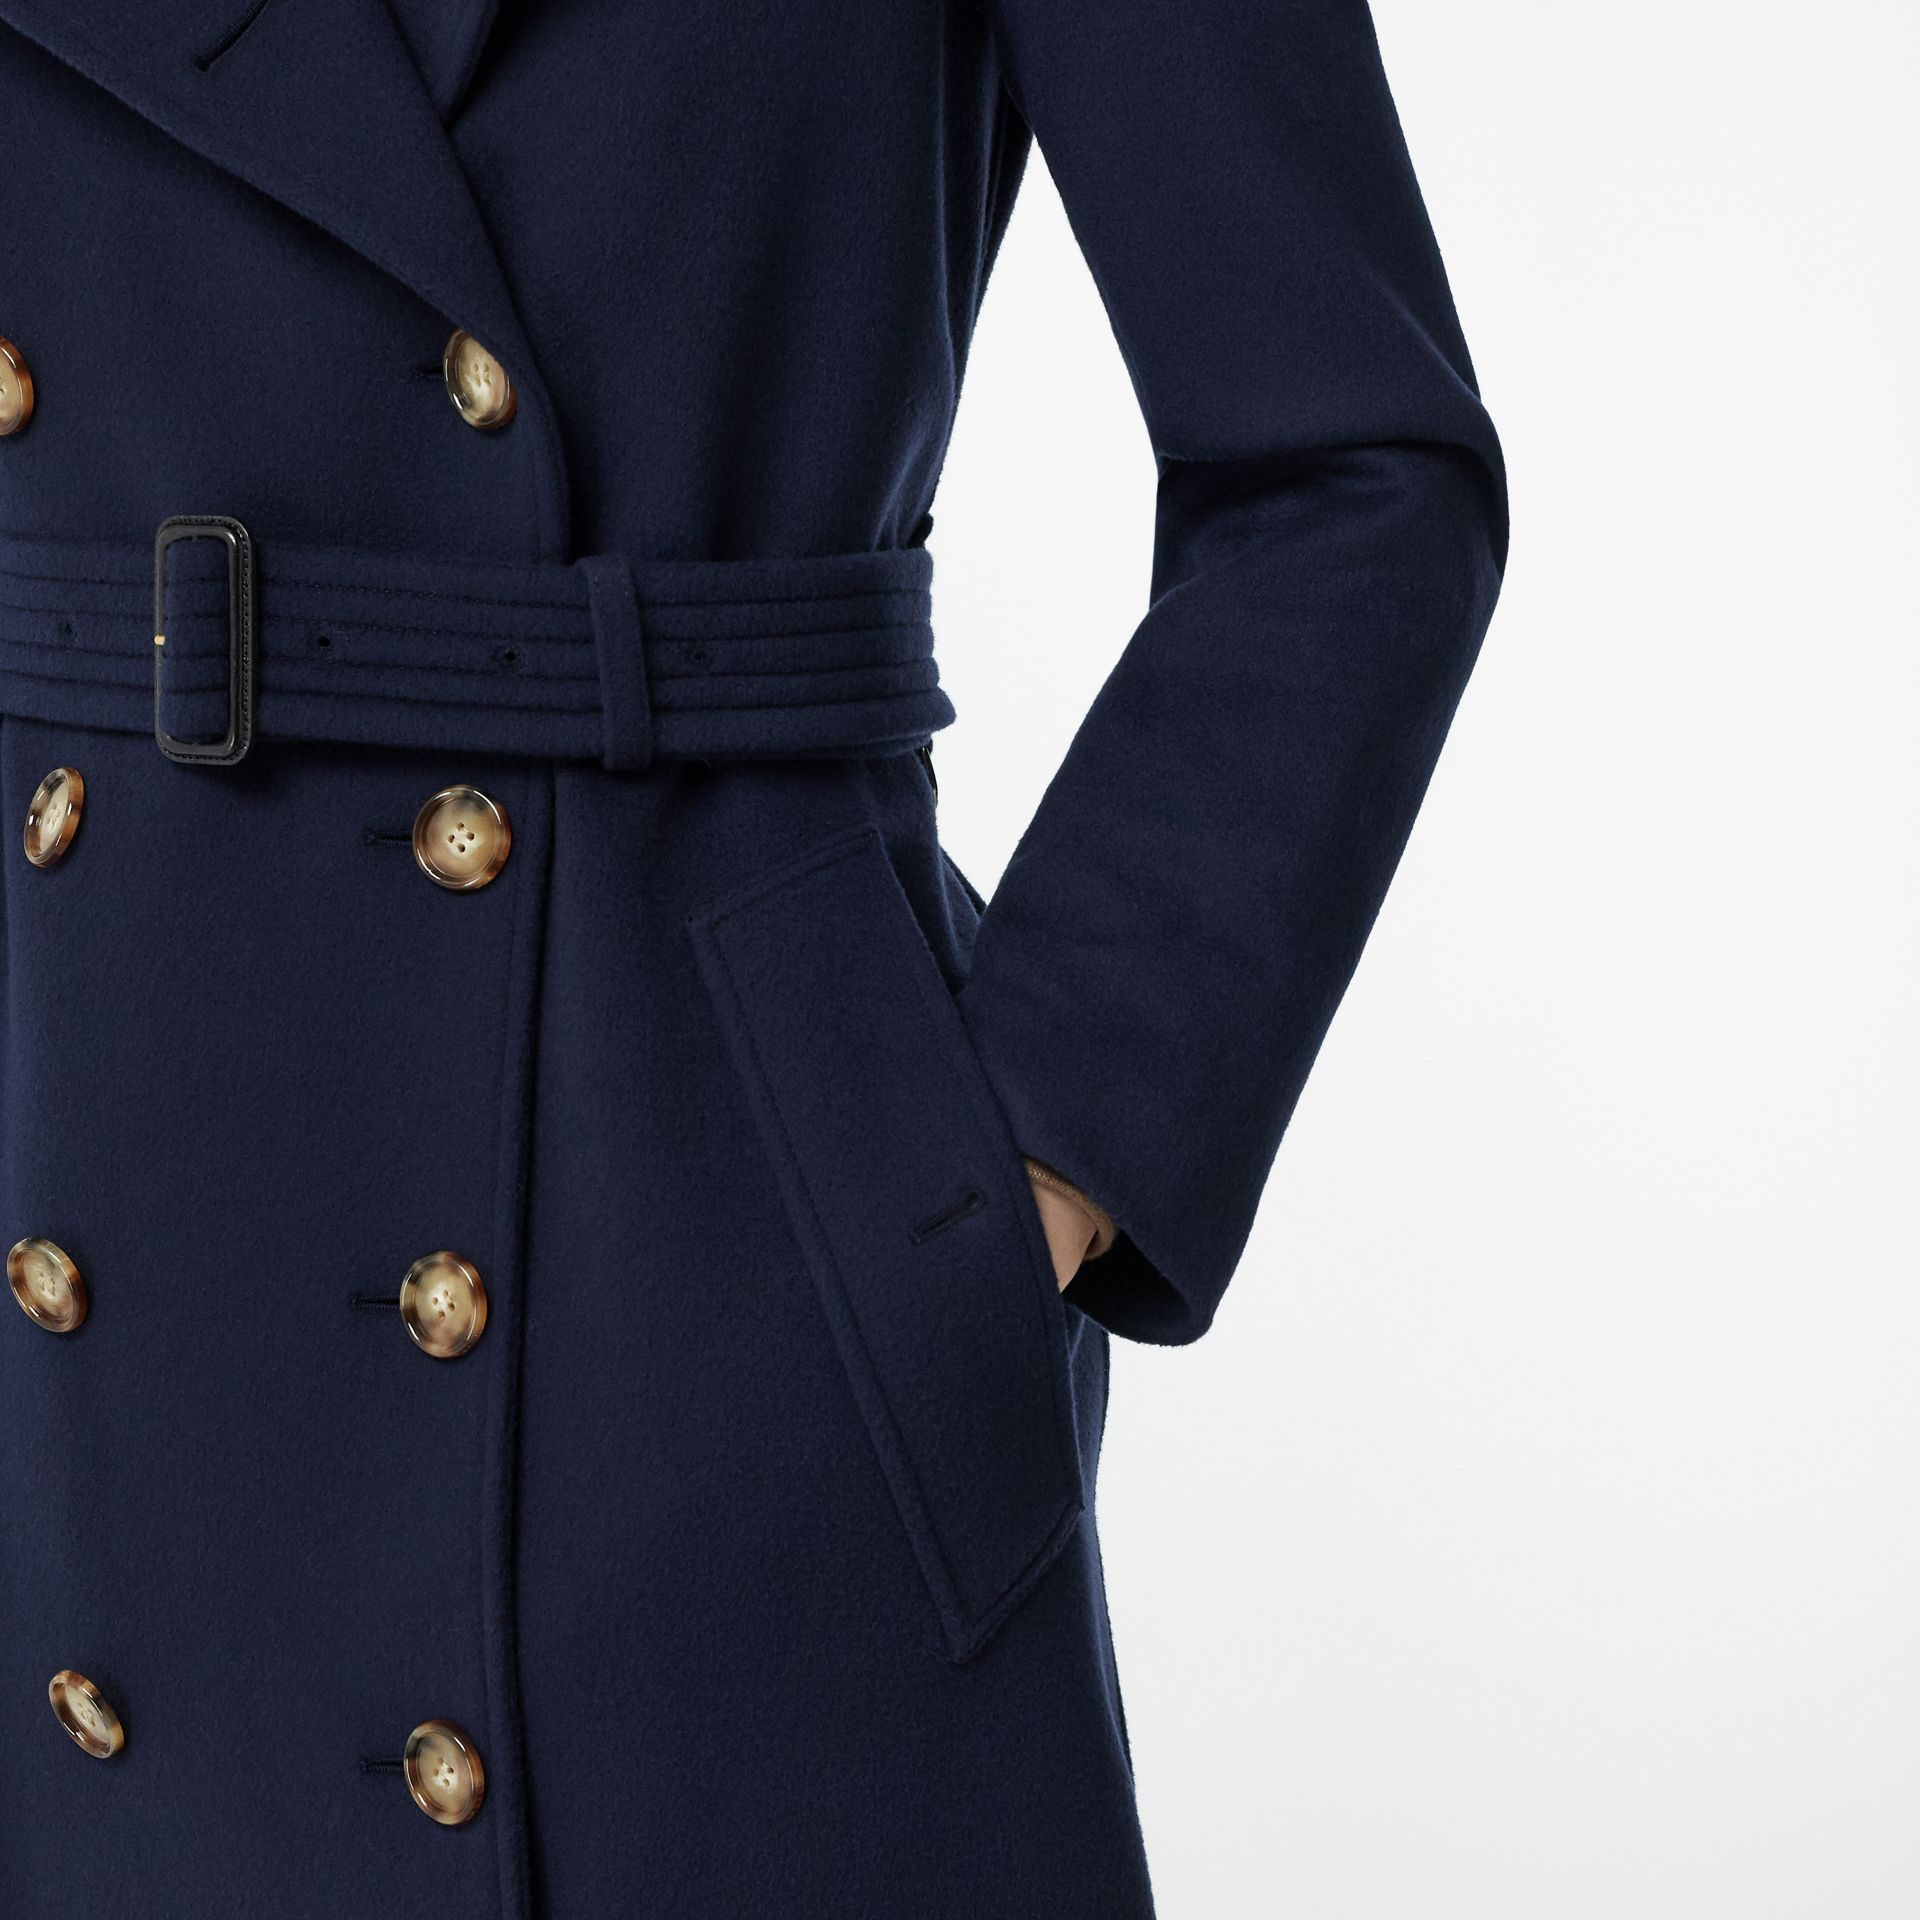 Cashmere Trench Coat in Navy - Women | Burberry Australia - gallery image 5